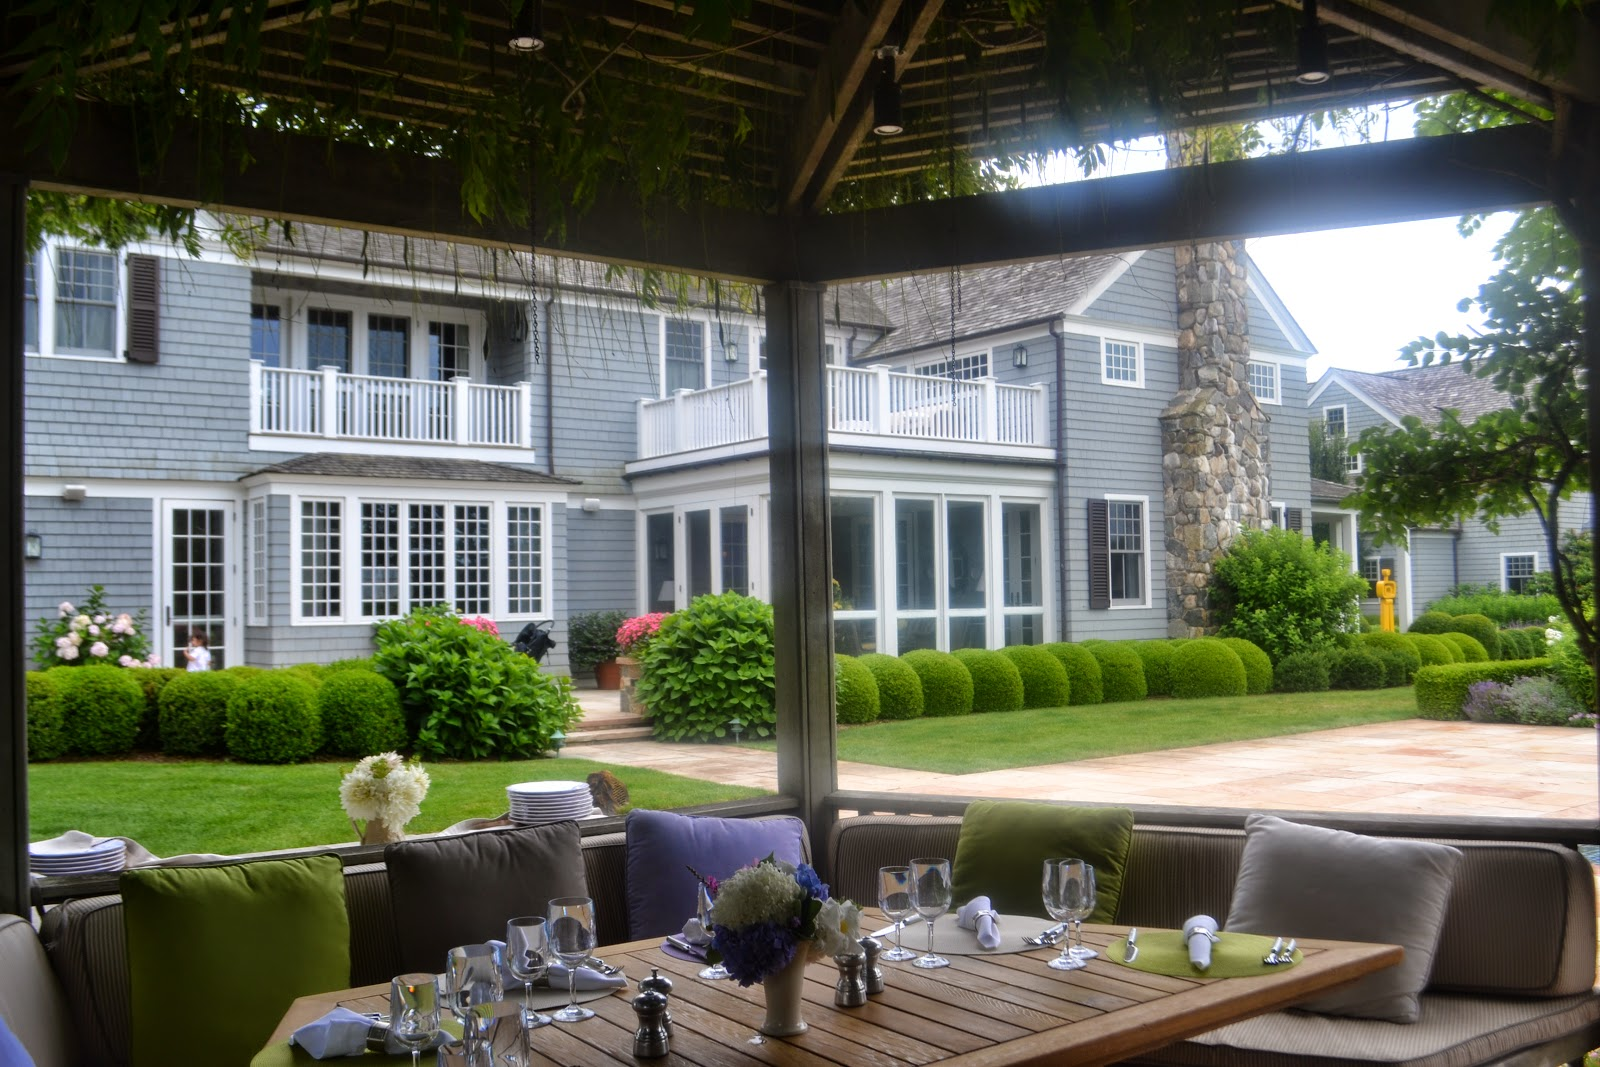 nest by tamara under the pergola v a fabulous weekend lunch with